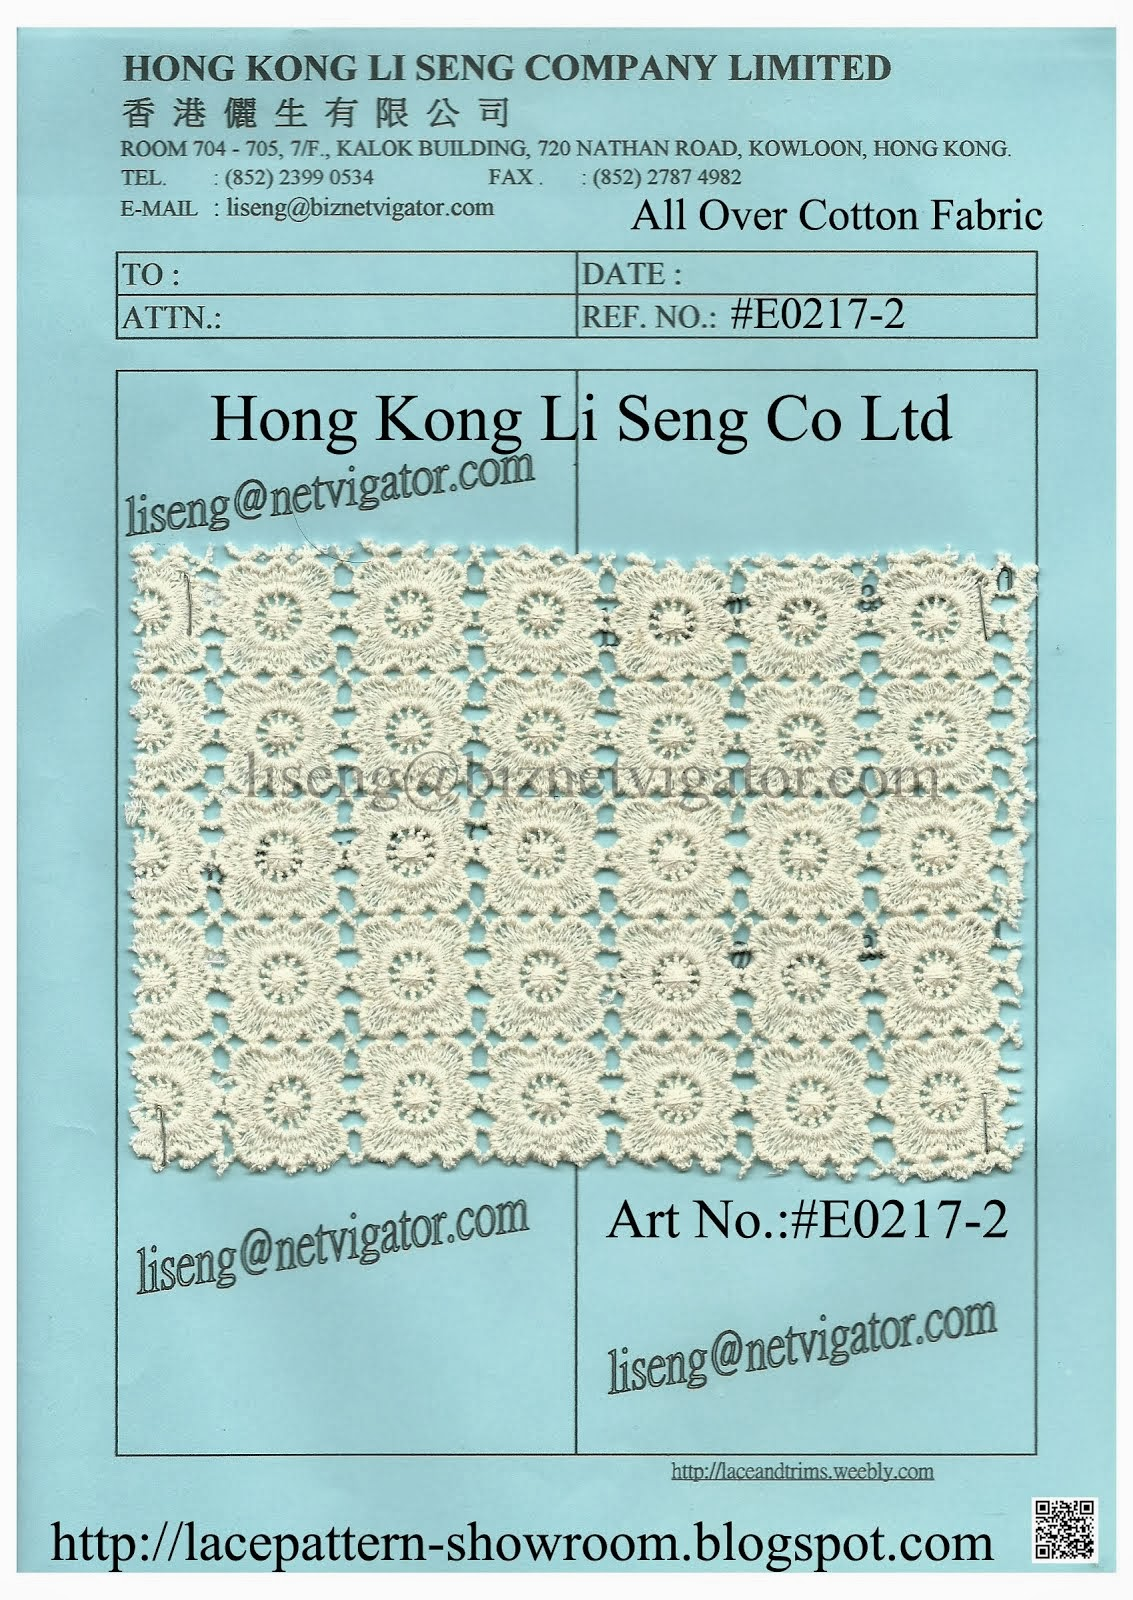 New Pattern All Over Cotton Fabric Manufacturer - Hong Kong Li Seng Co Ltd